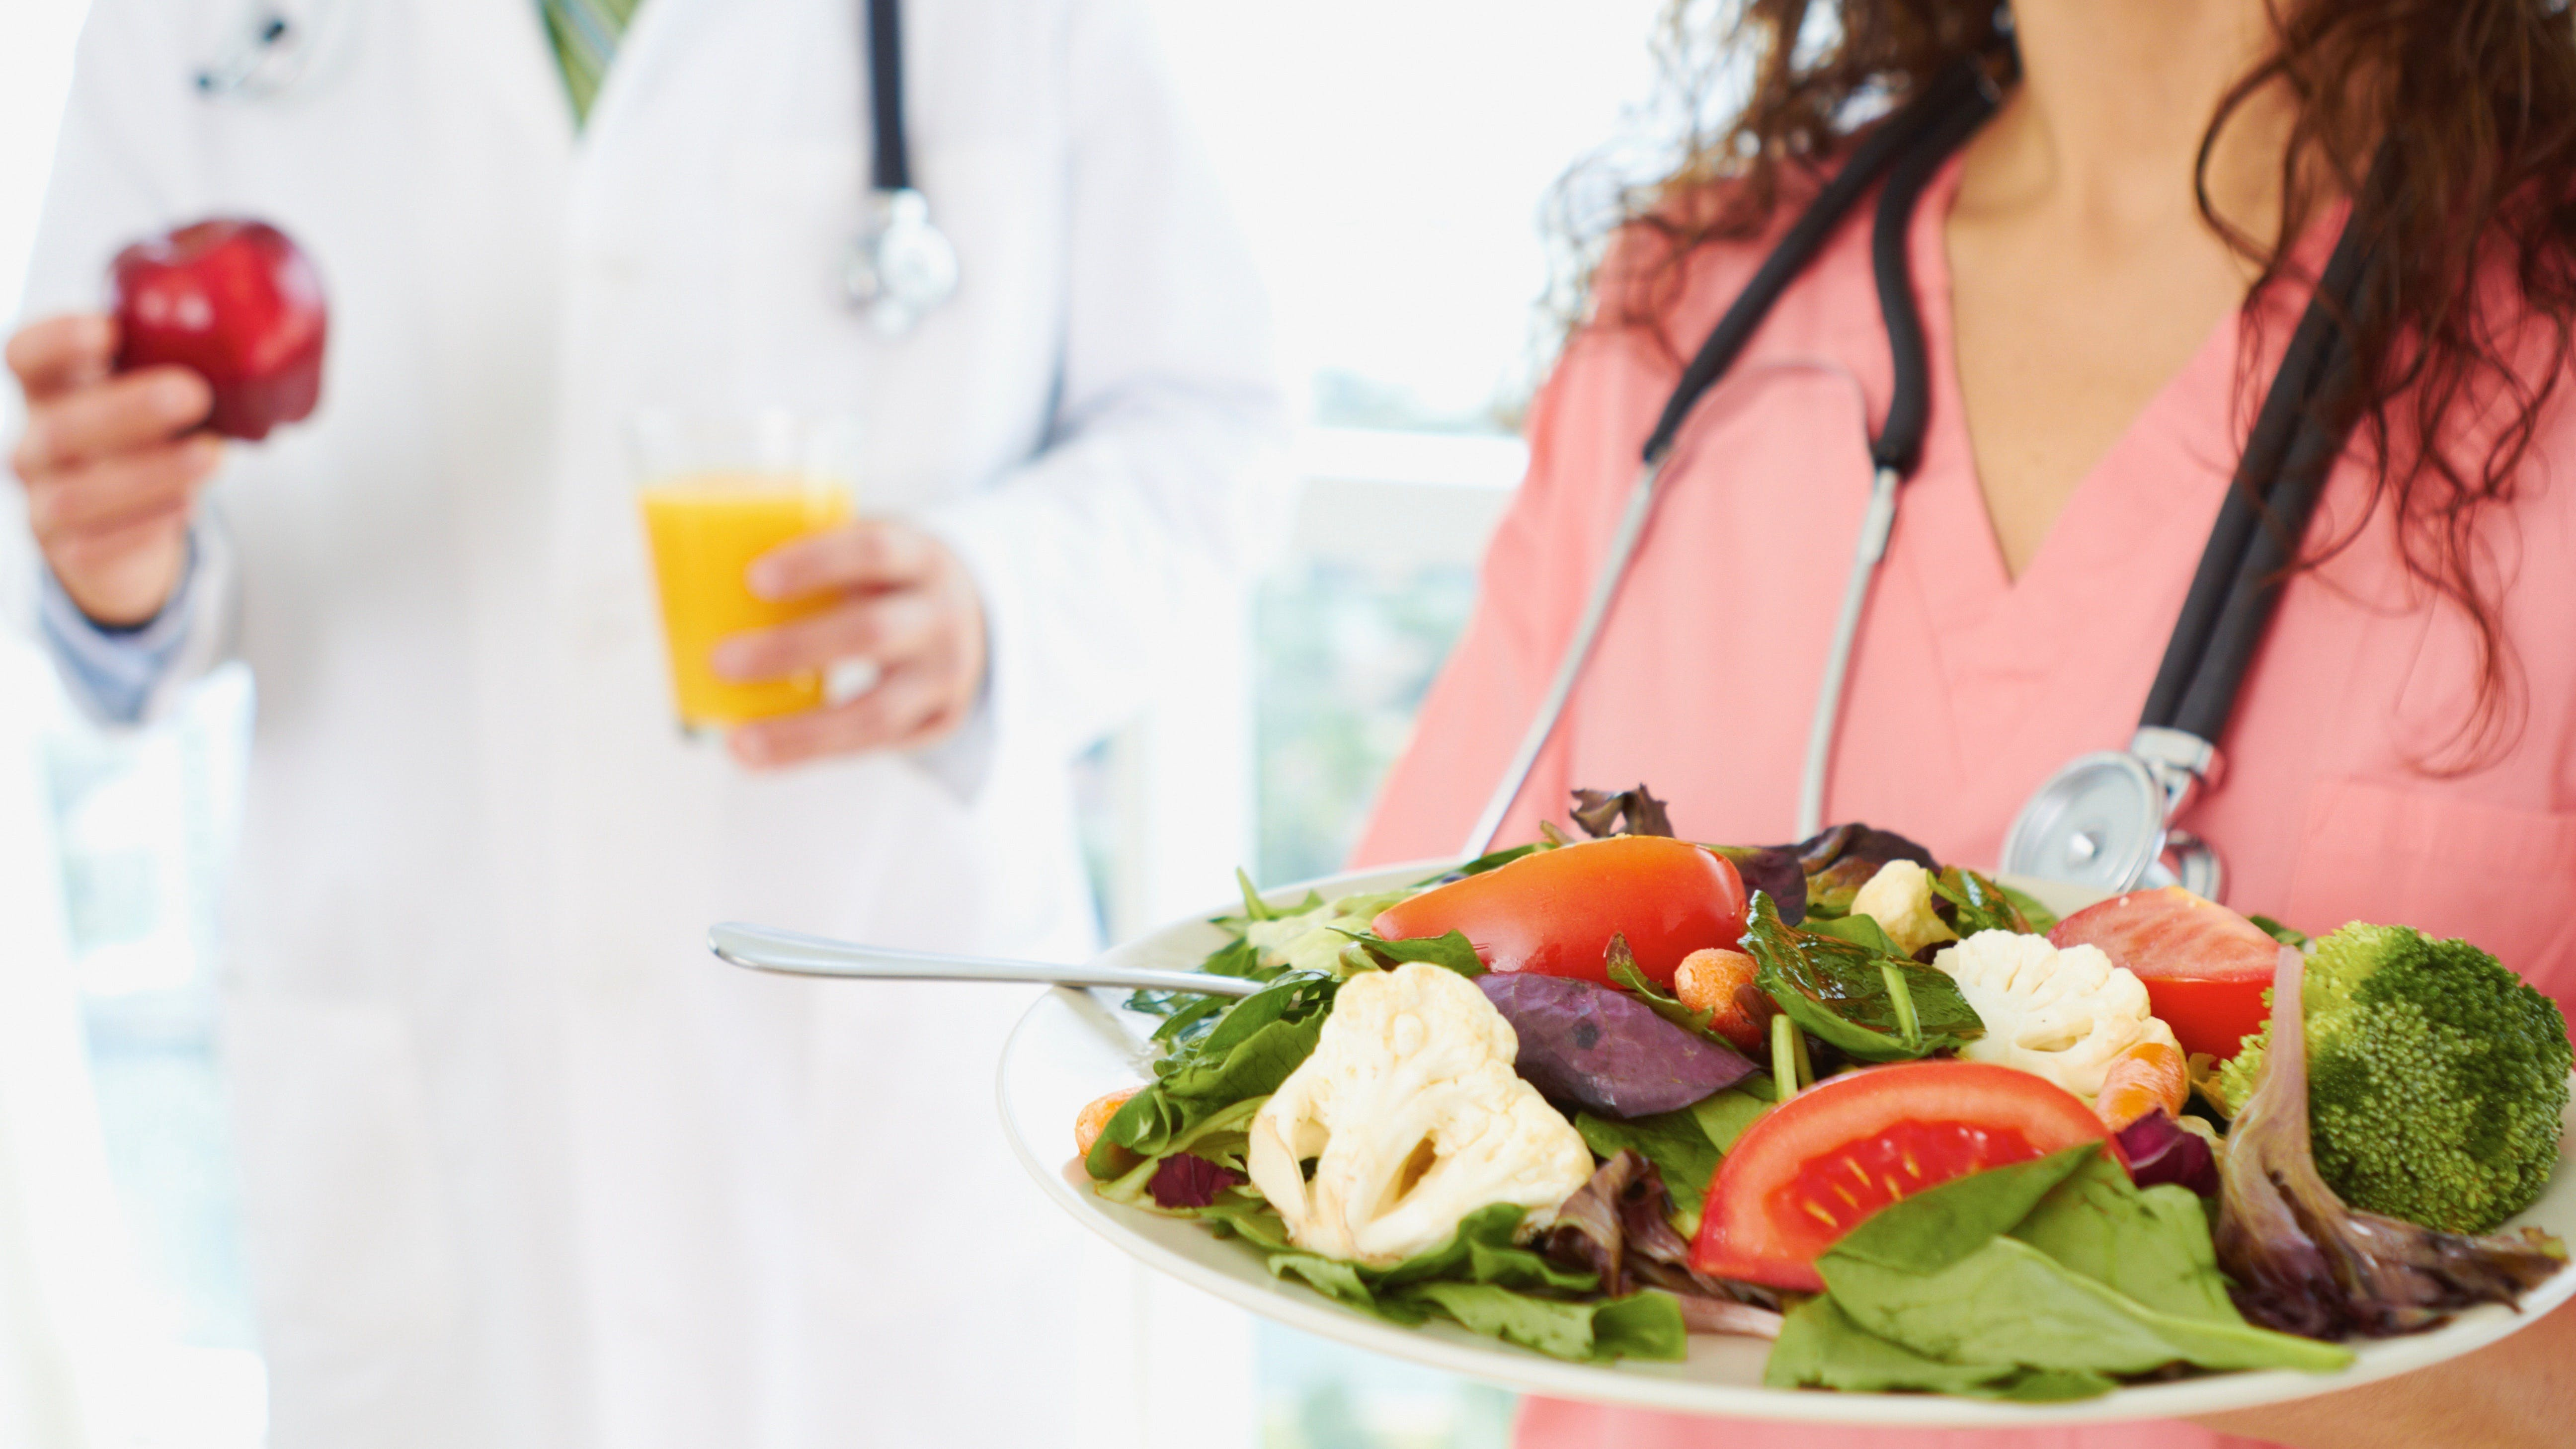 The guide for doctors skeptical of low carb